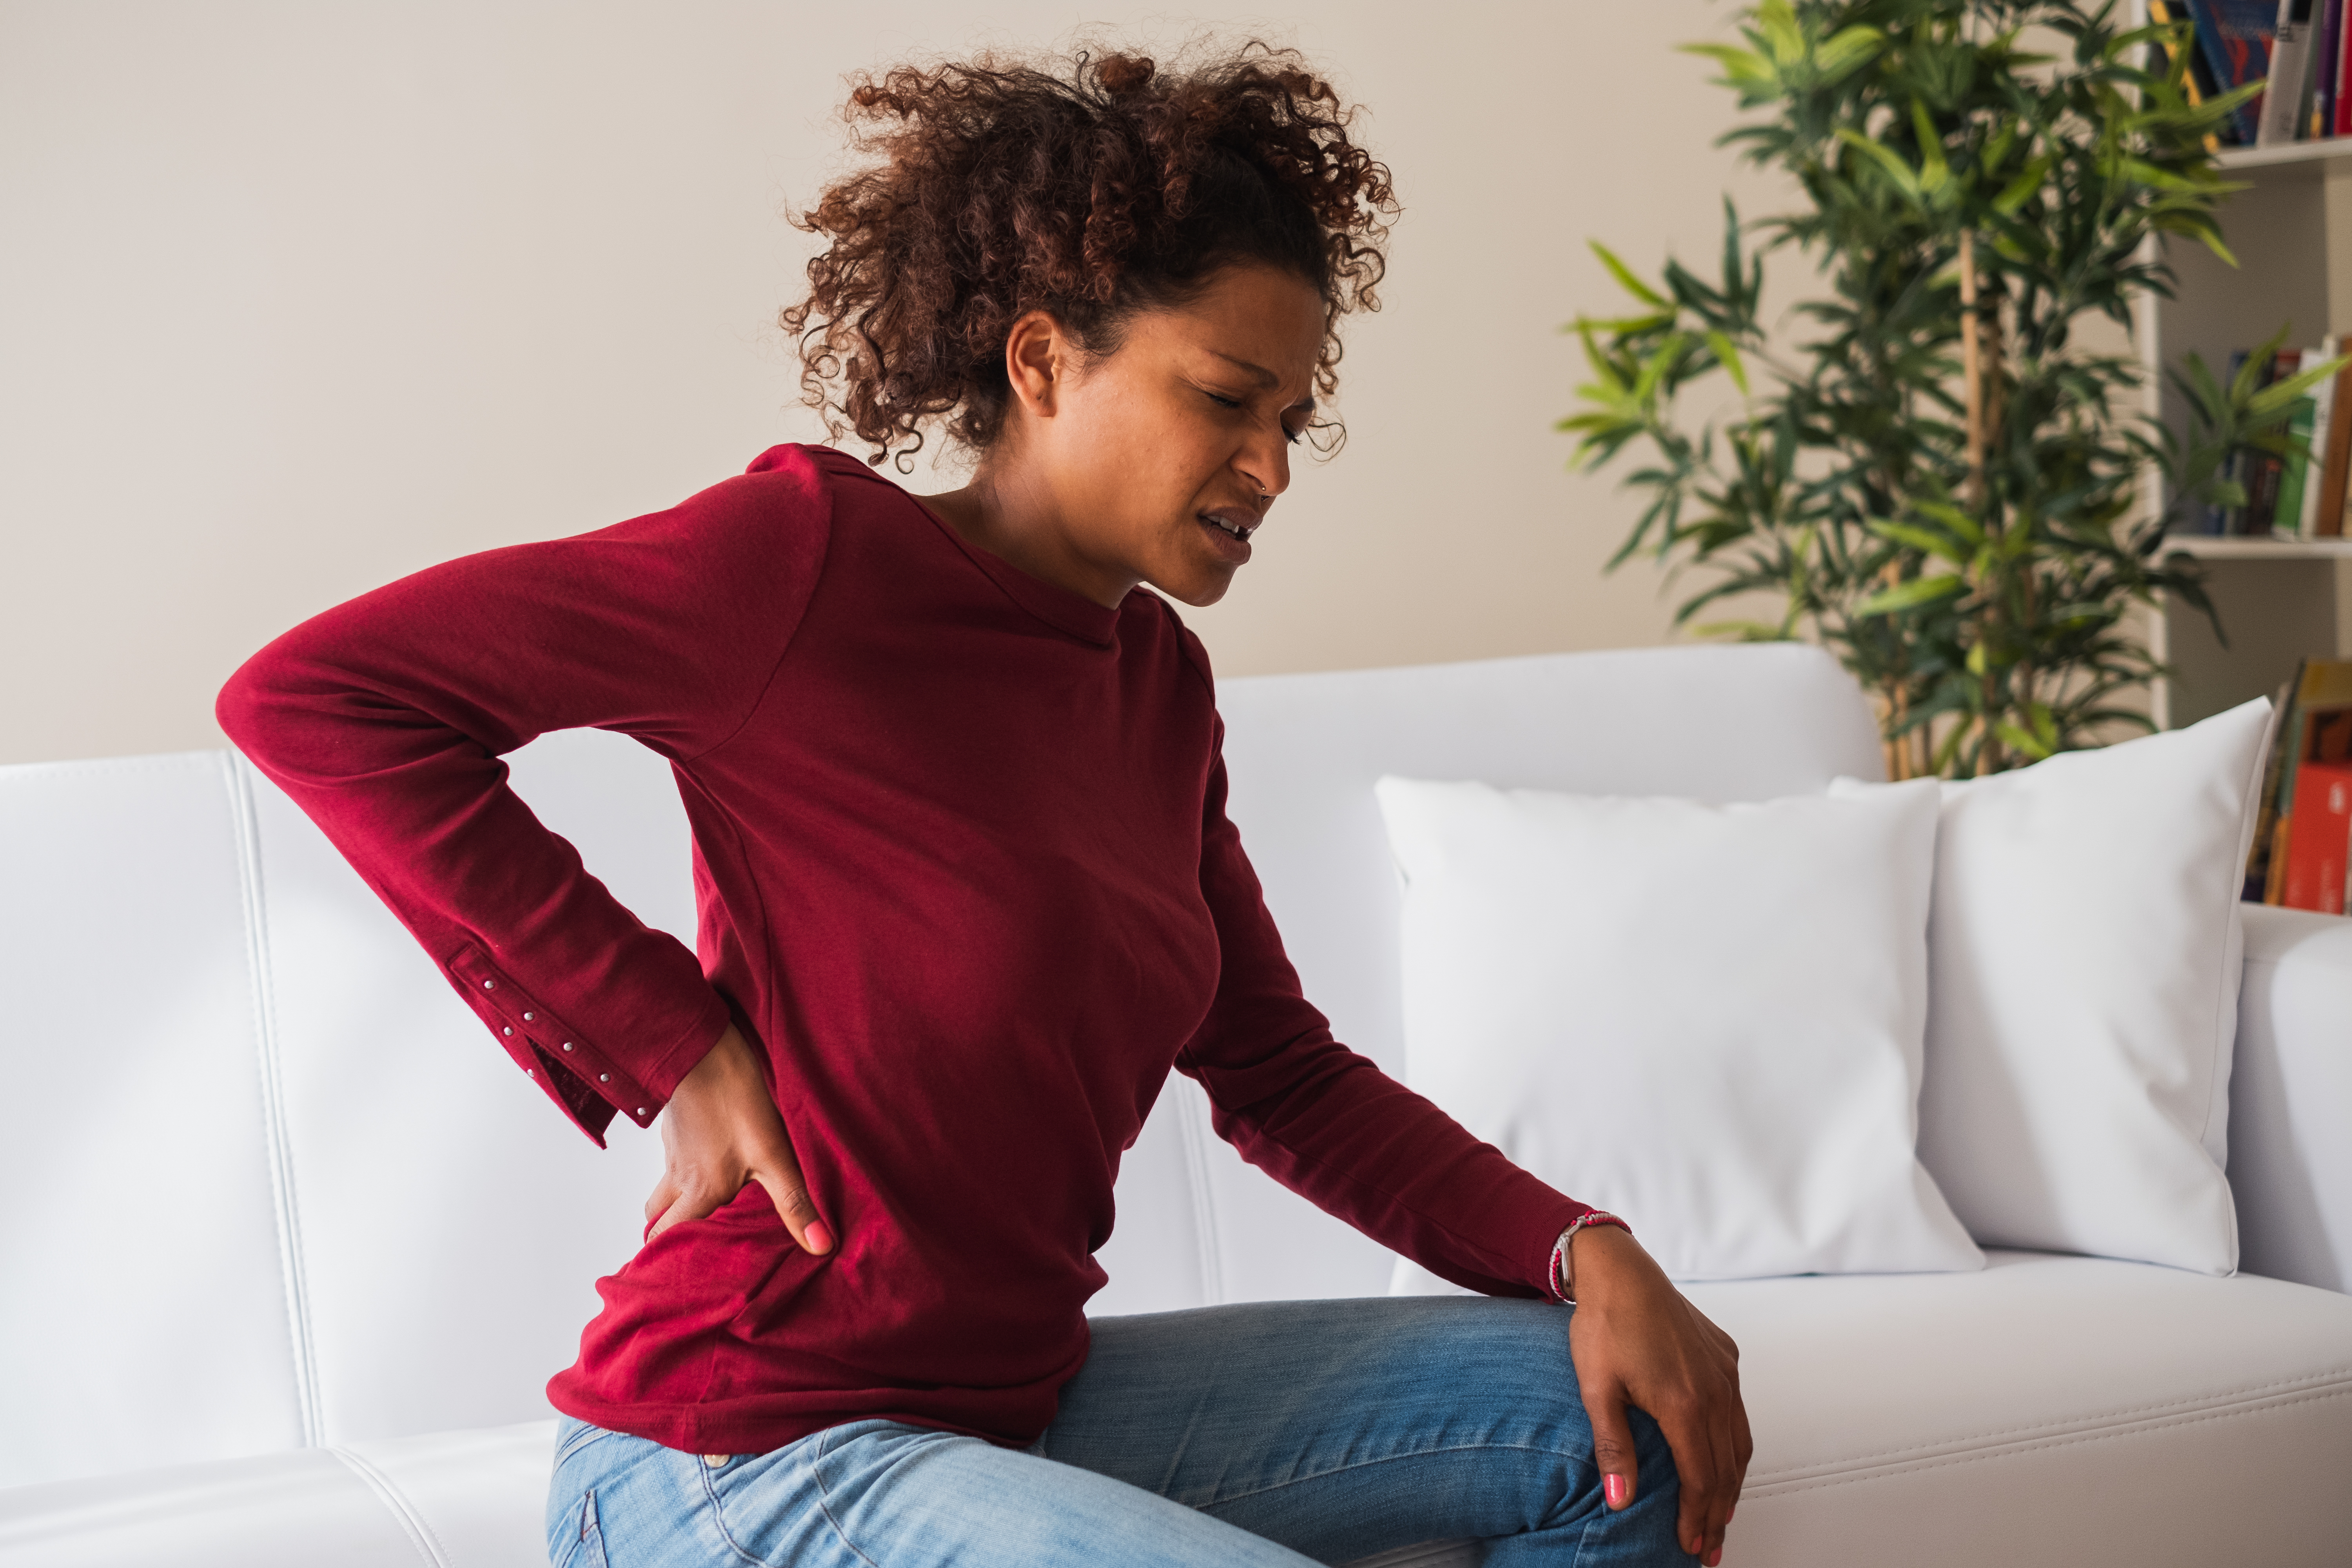 Woman on couch with back pain